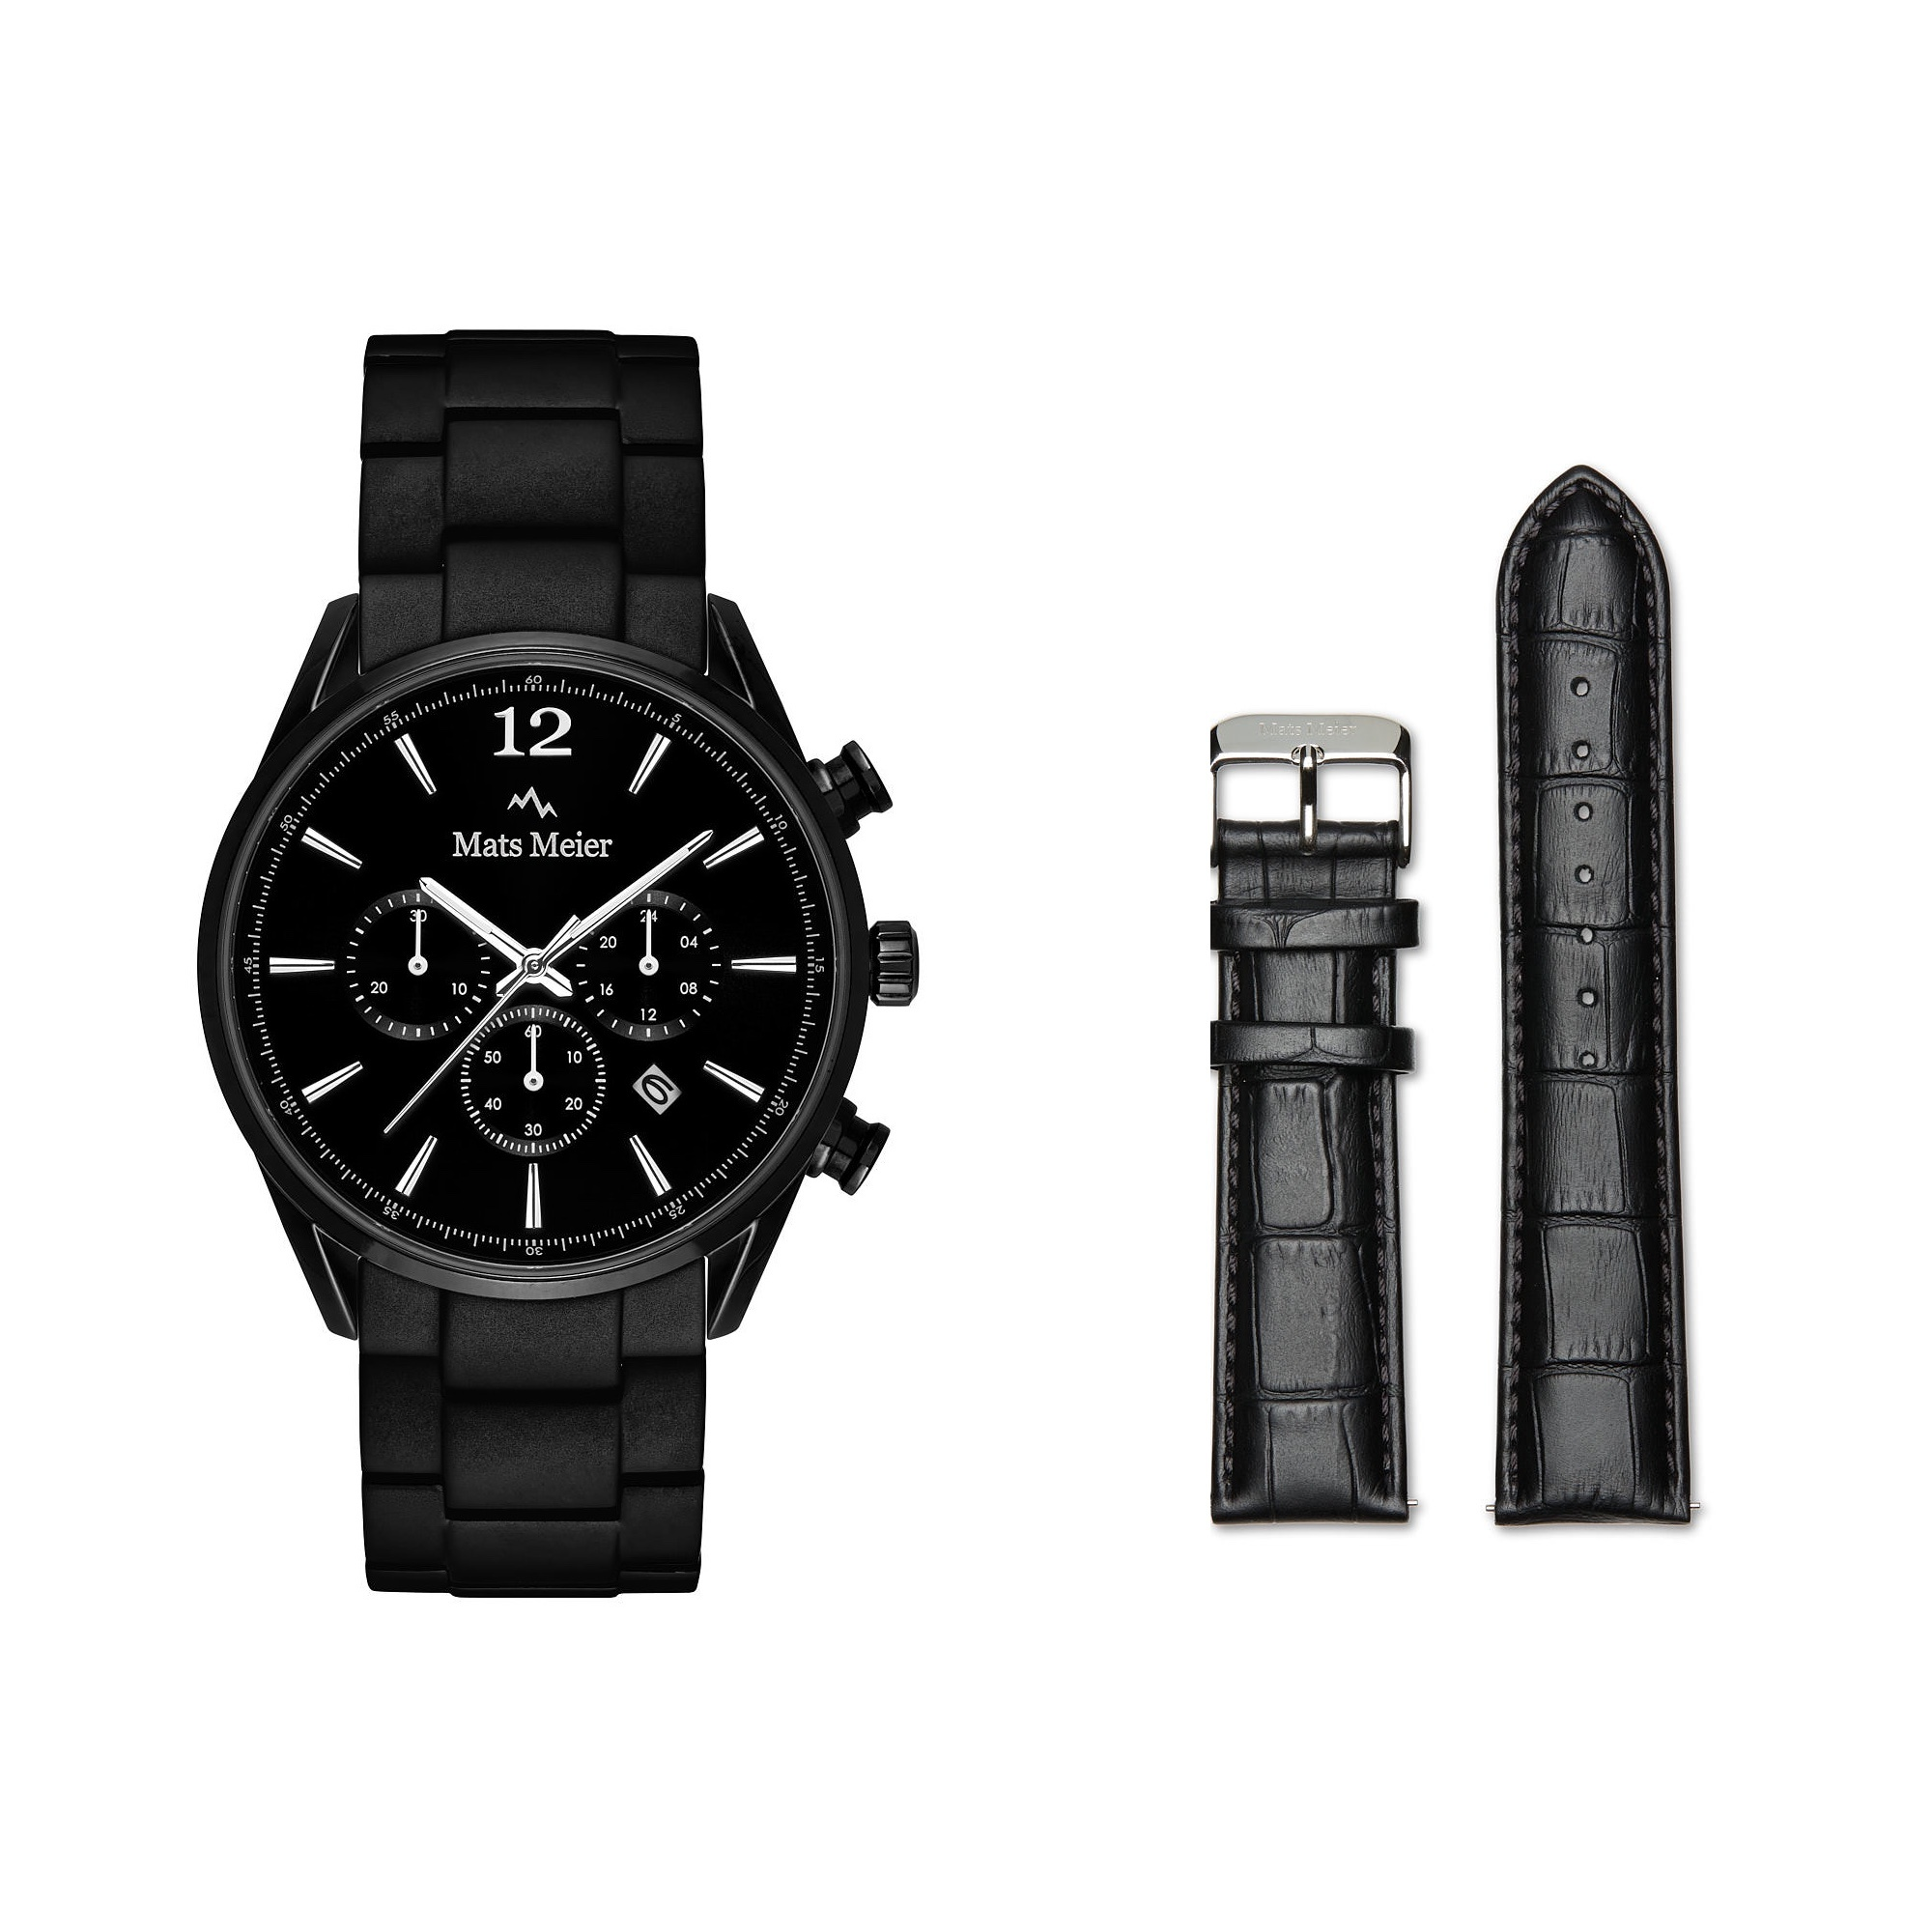 Mats Meier Grand Combin chronograph mens watch black and strap giftset